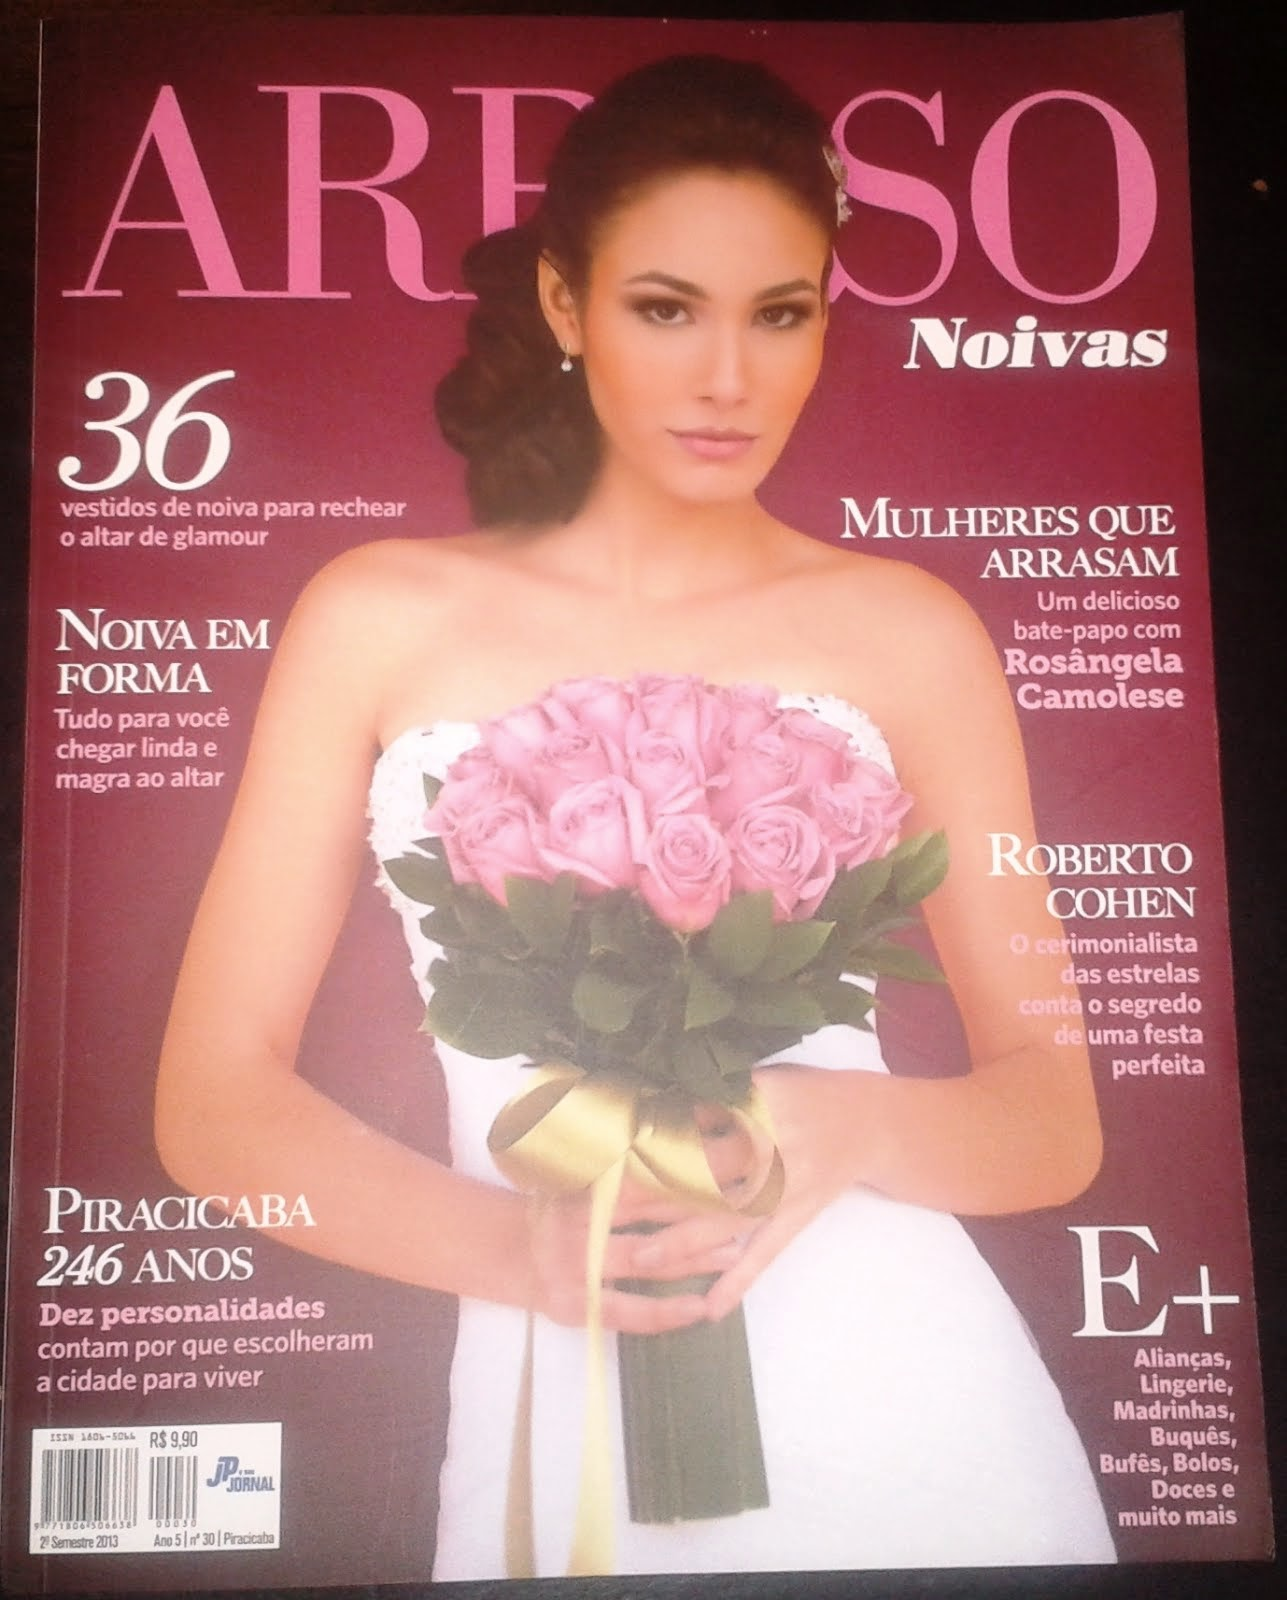 Revista Arraso Noivas